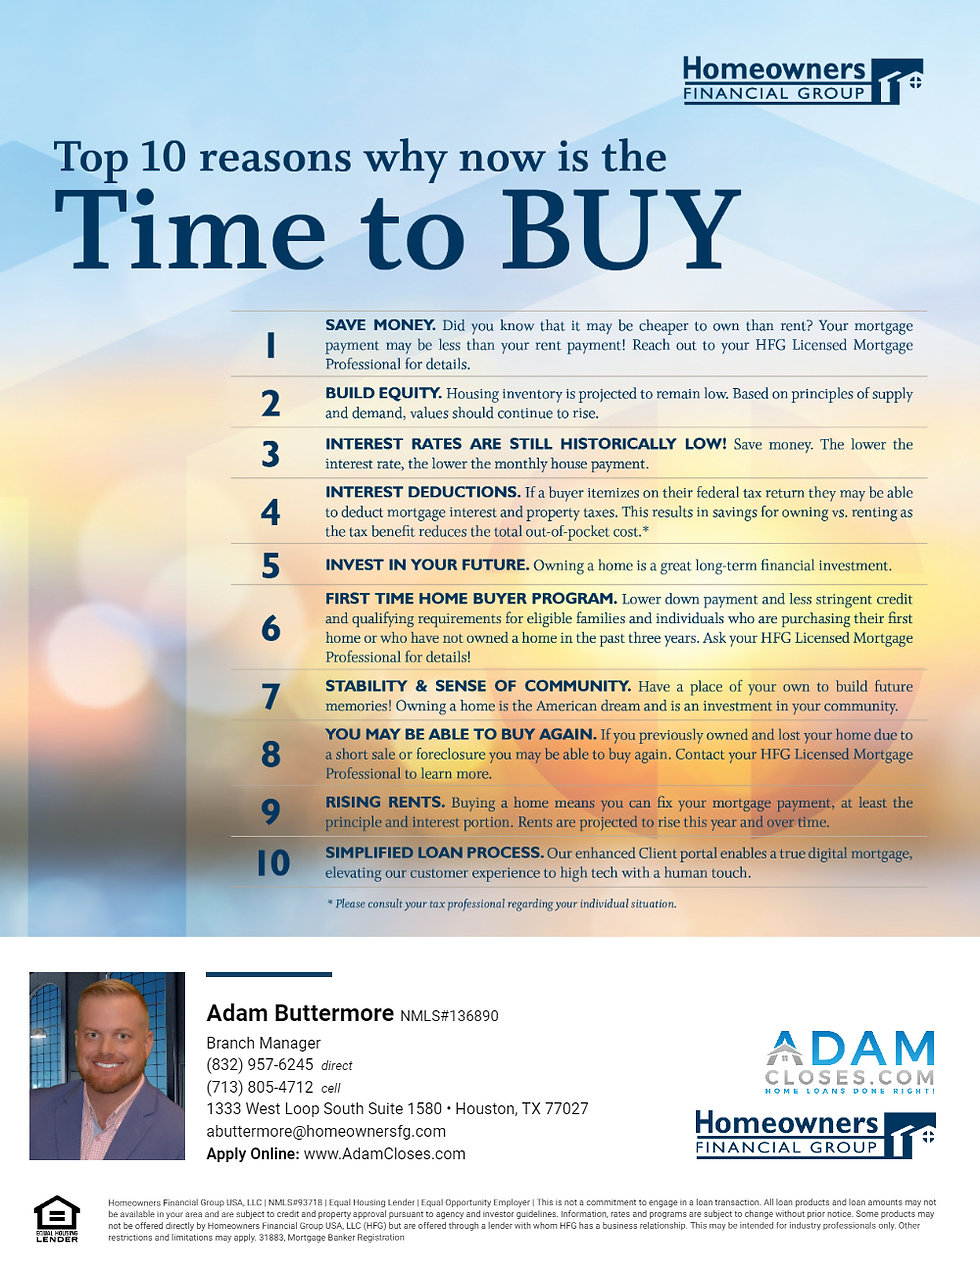 Top 10 Reasons Now is the time to Buy a Home